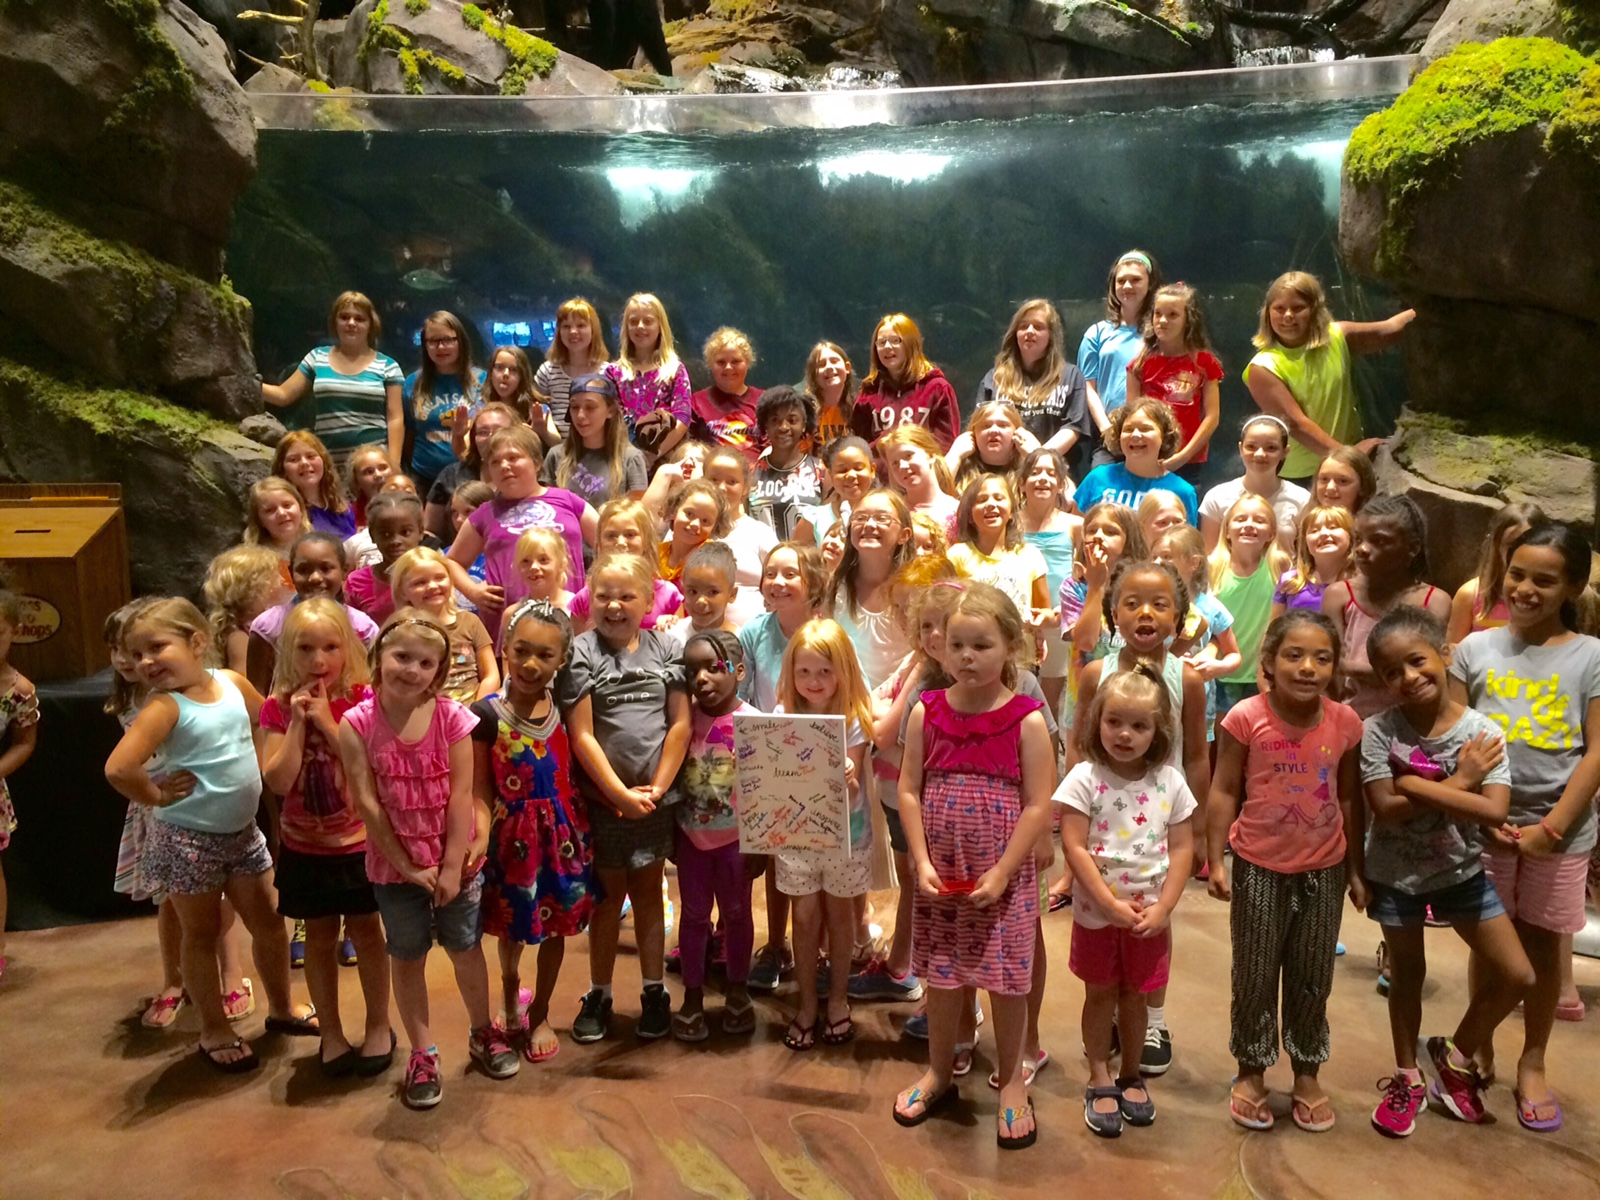 Thank You to Quest Laboratory for sponsoring our Fish Bowl Trip!